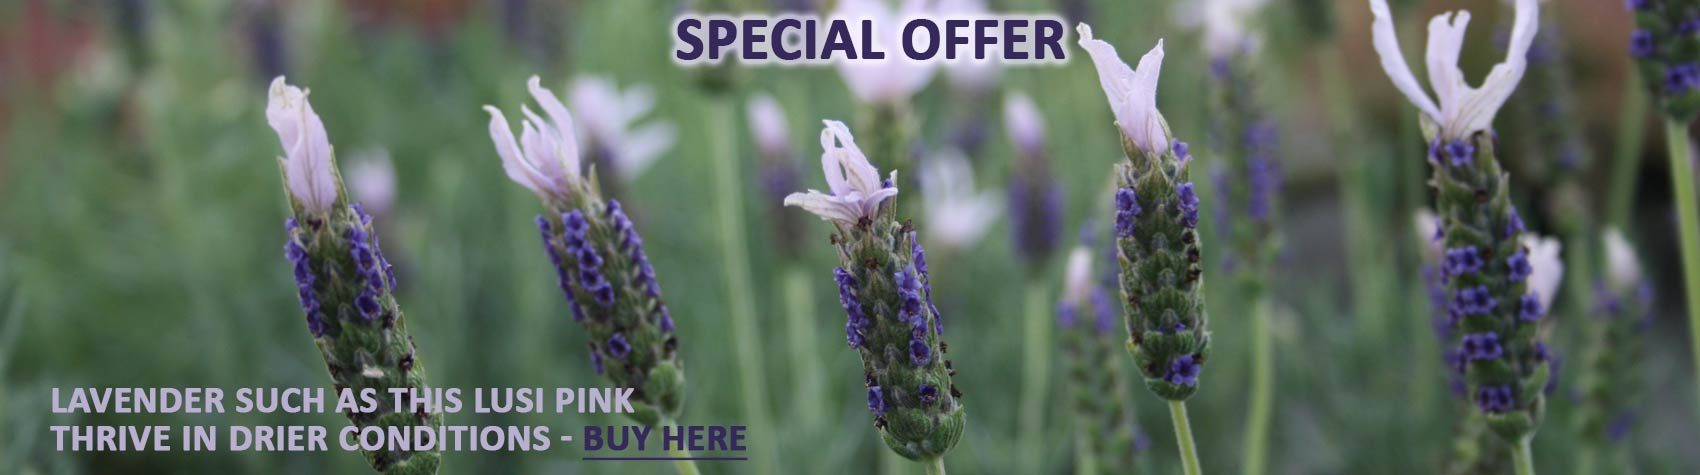 lavender offer